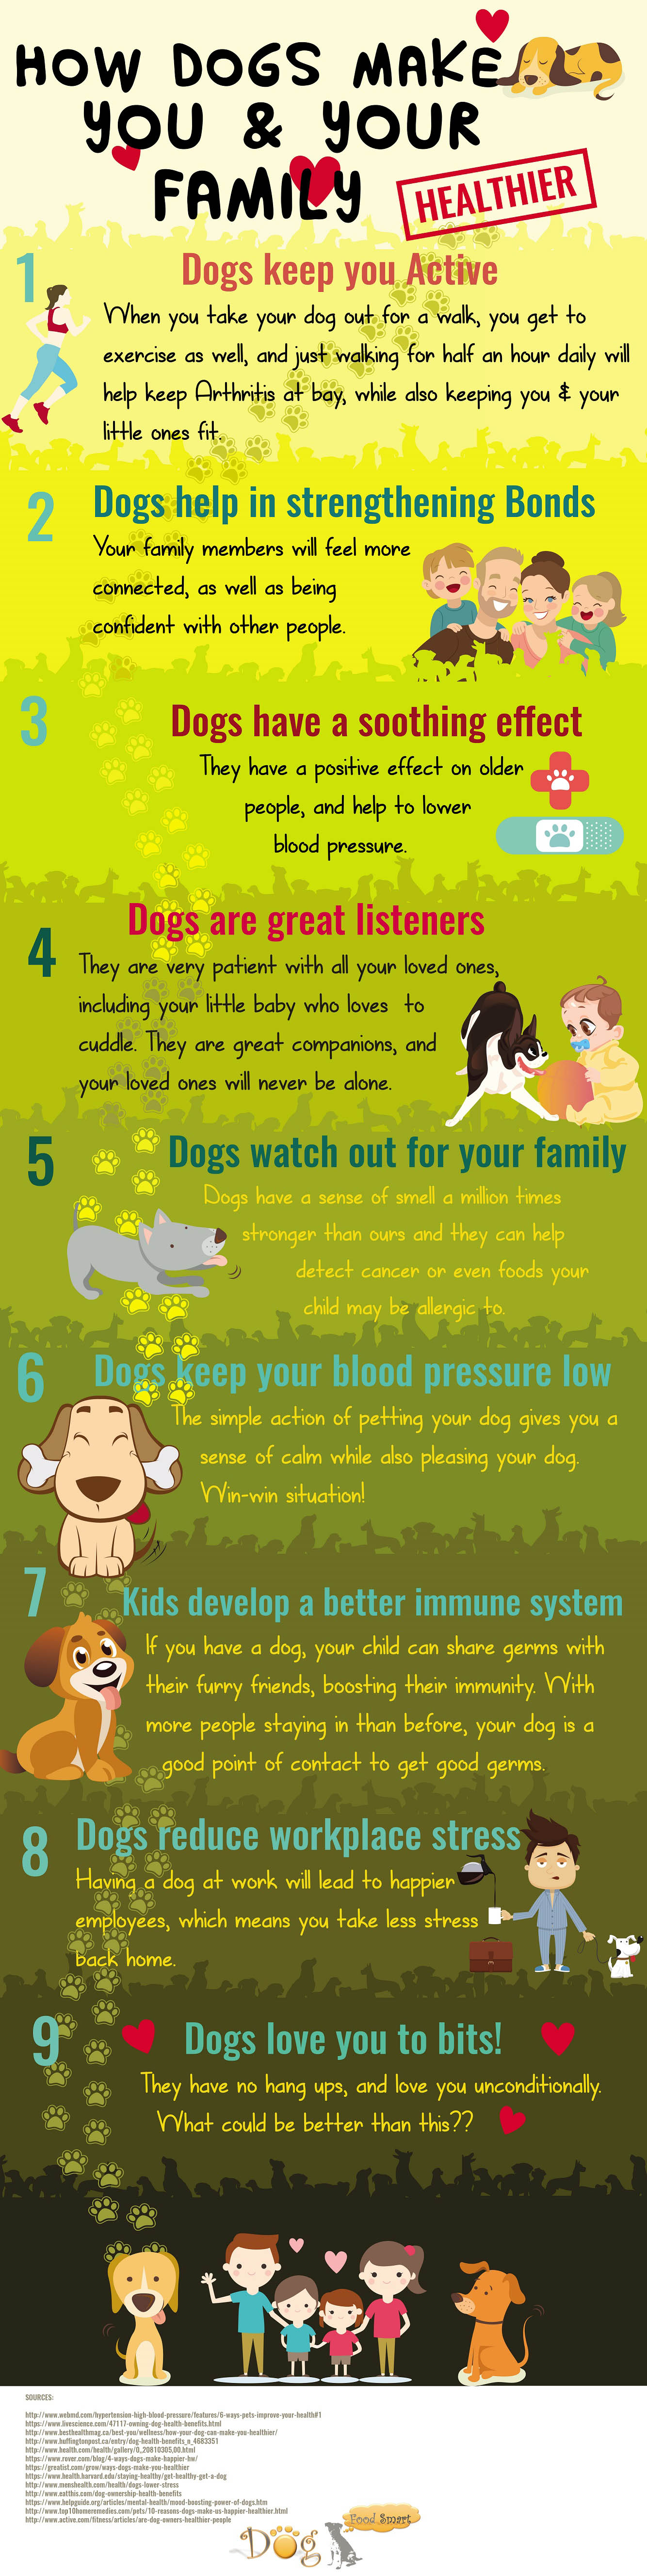 How Dogs Make You & Your Family Healthier